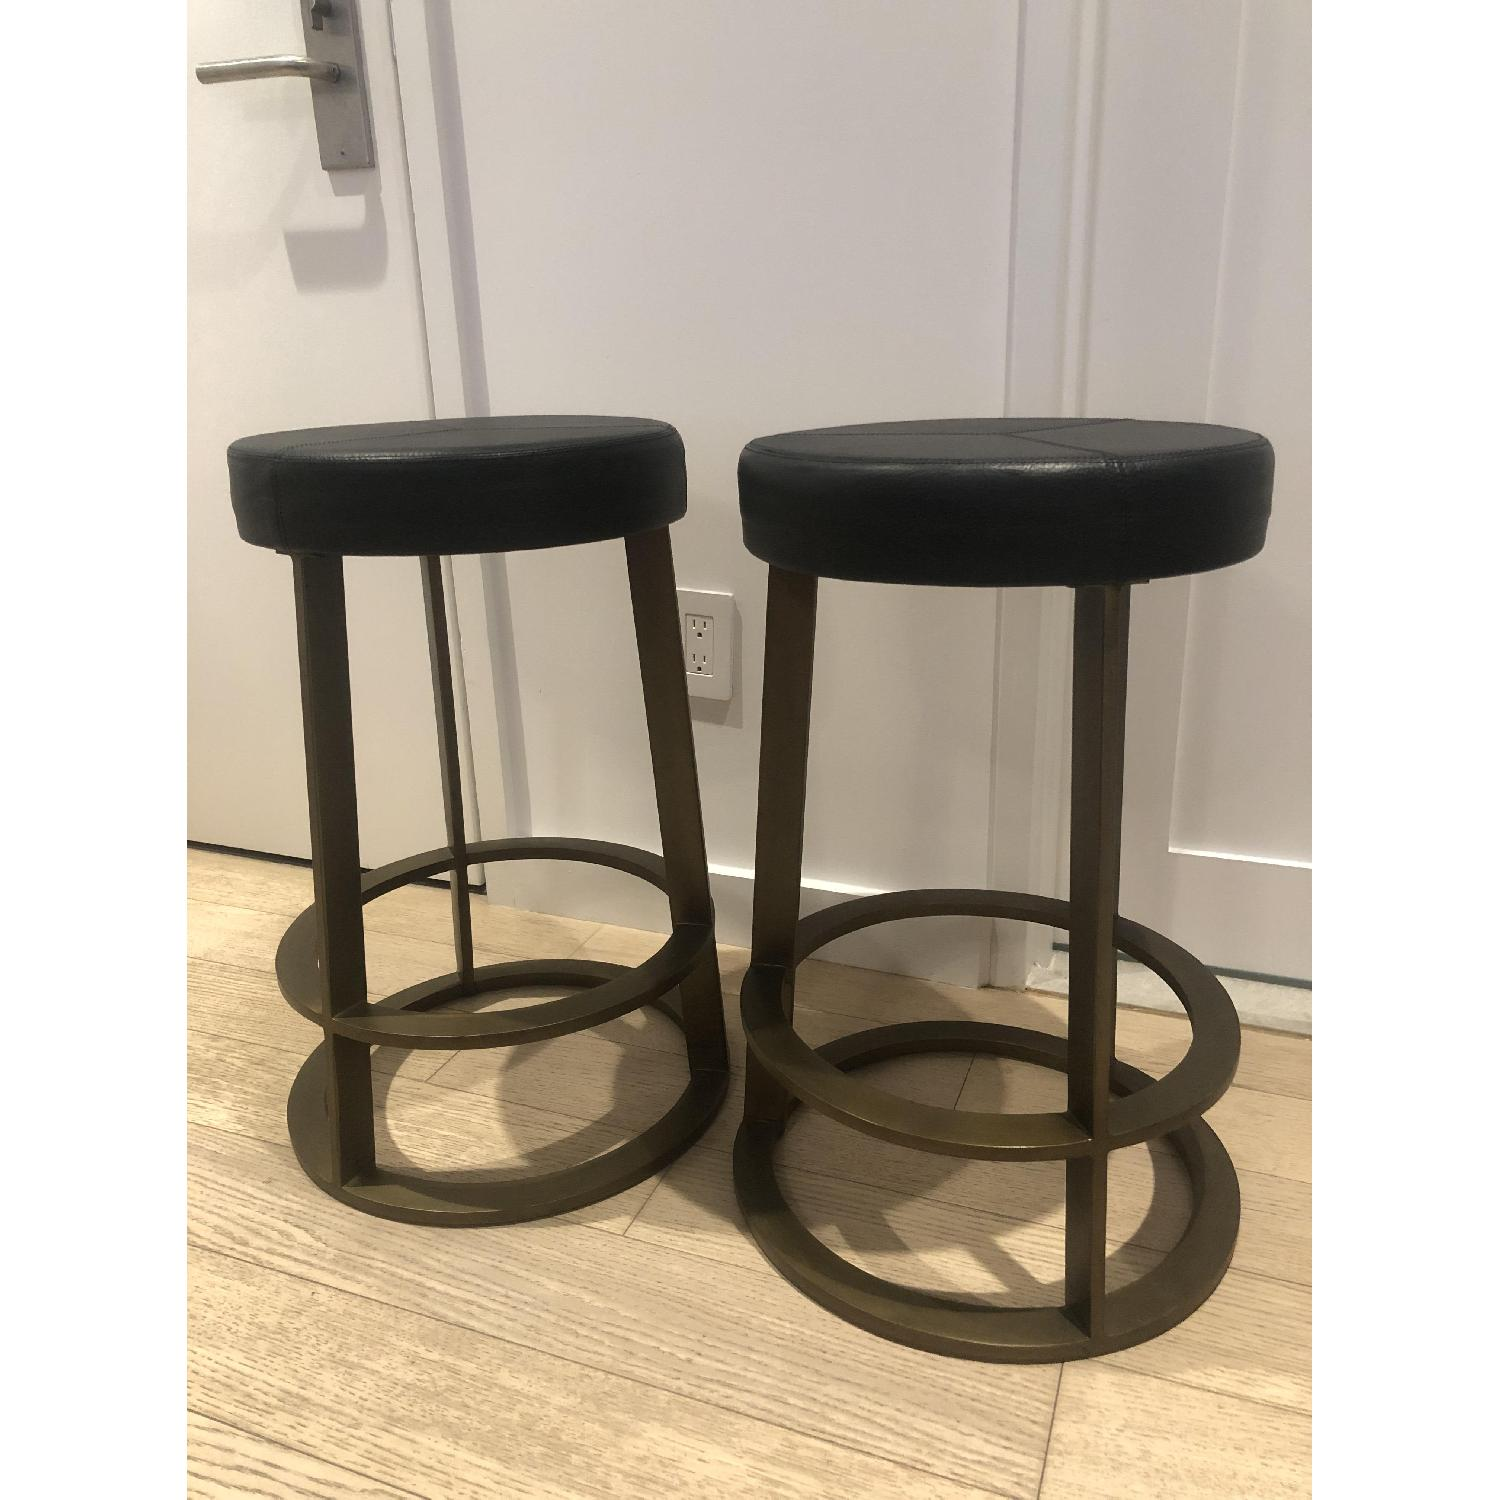 CB2 Leather Reverb Stools - image-11